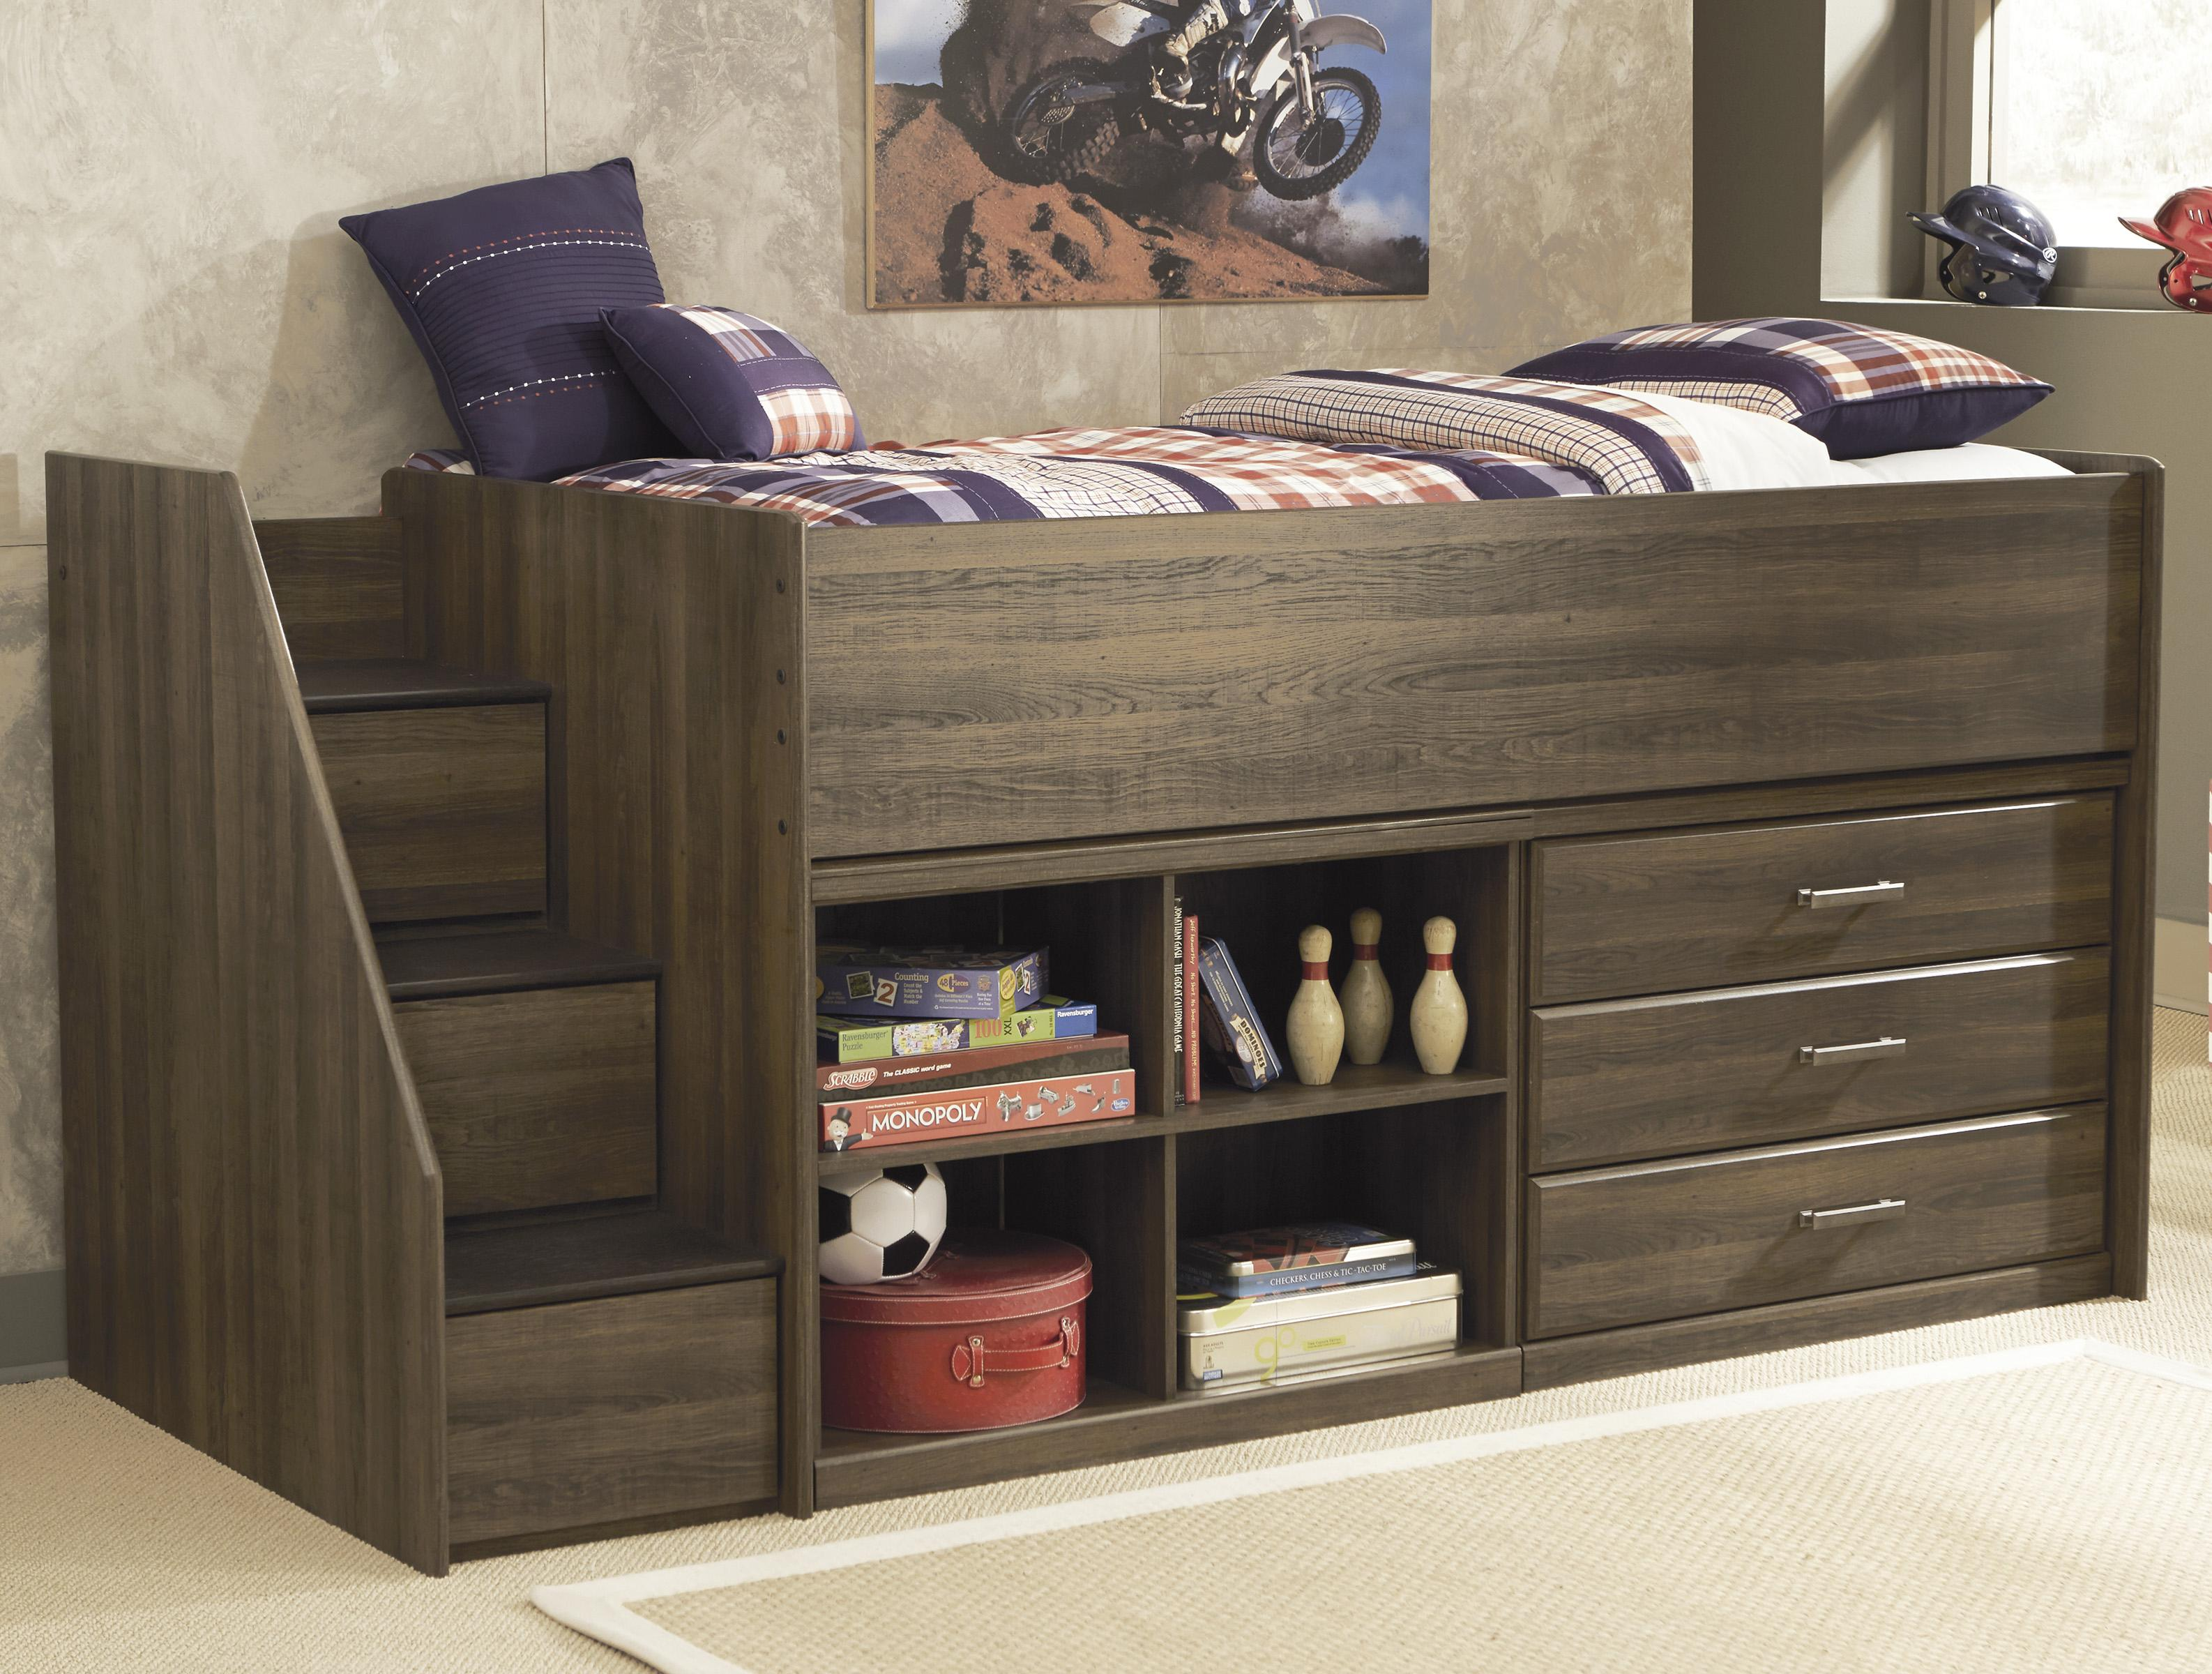 Signature Design by Ashley Juararo Twin Loft Bed with Left Storage Steps - Item Number: B251-13L+68T+17+19+B100-11